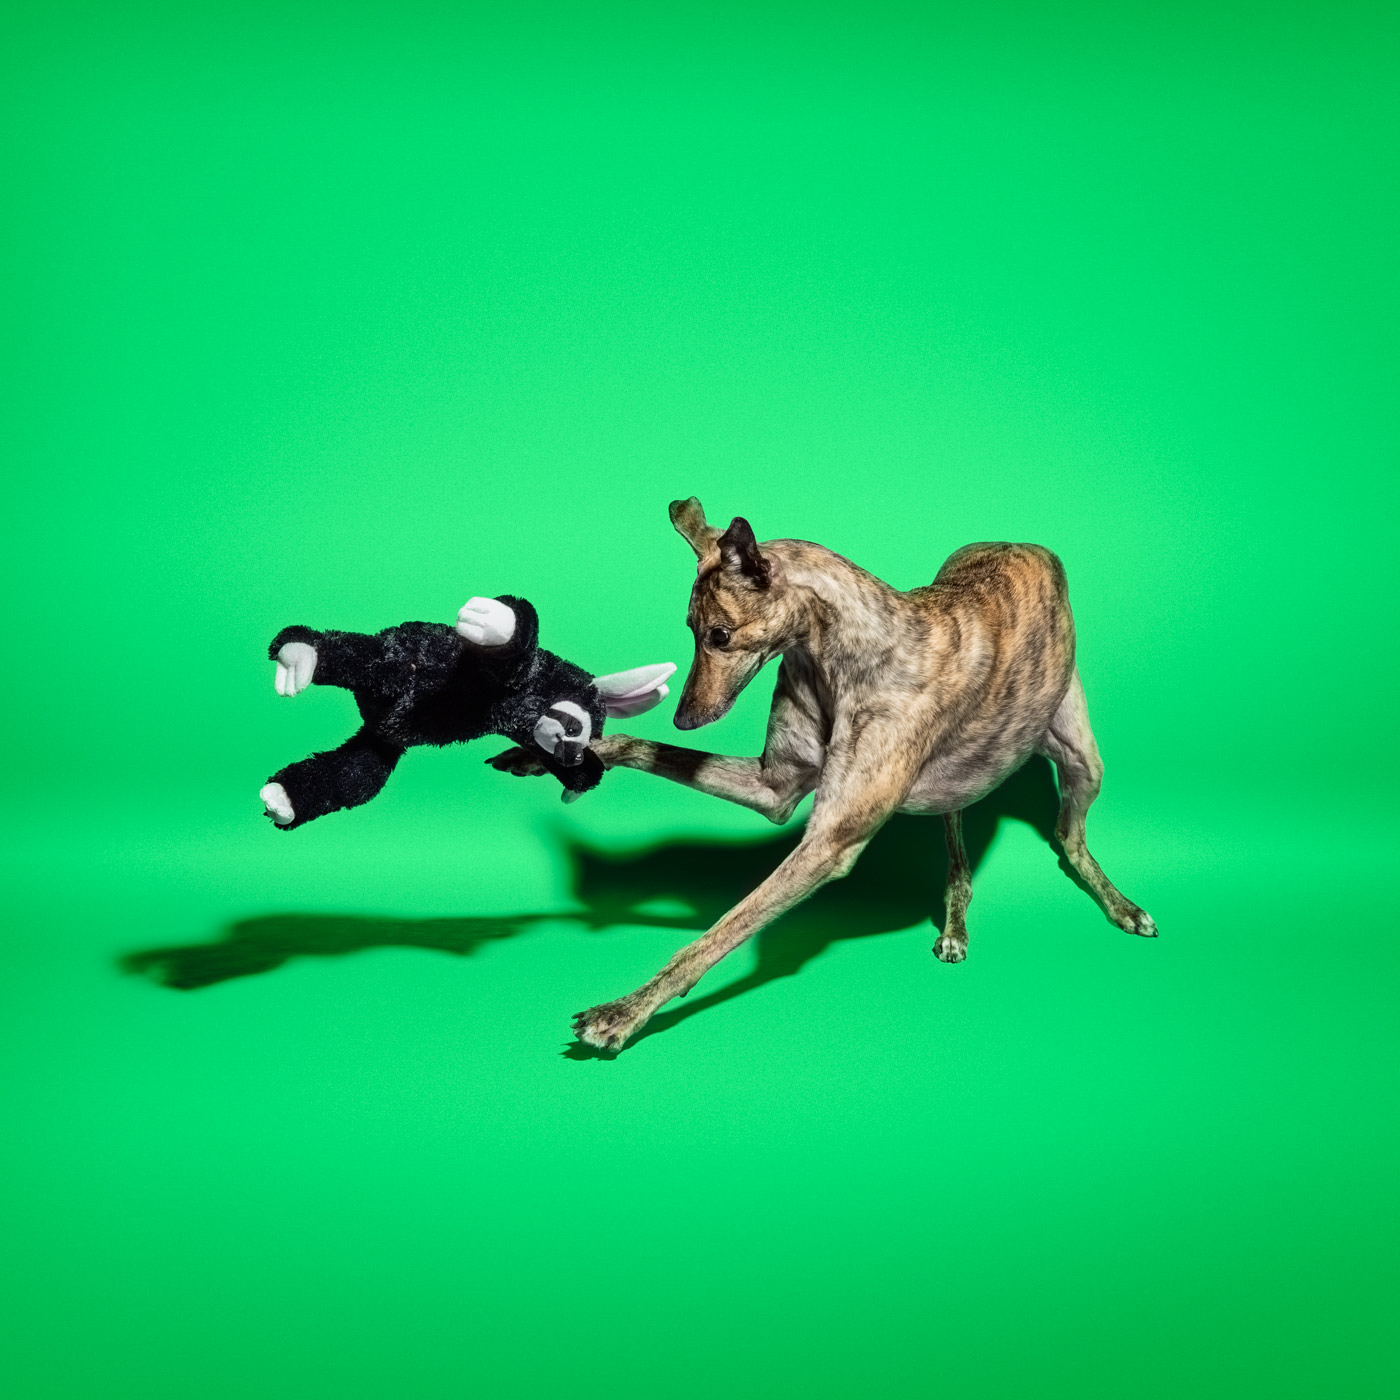 Commercial photography Portland - greyhound dog on green background